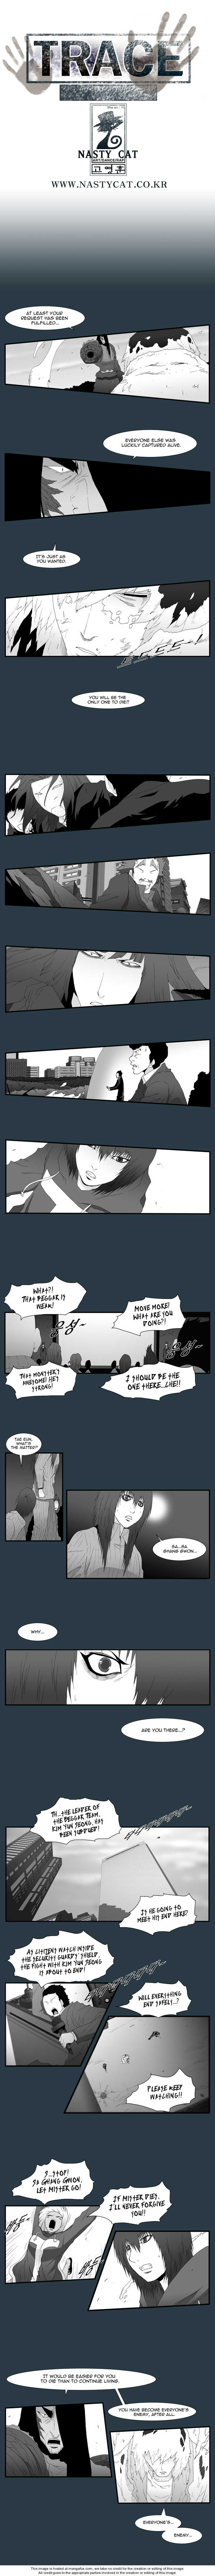 Trace 14 Page 1